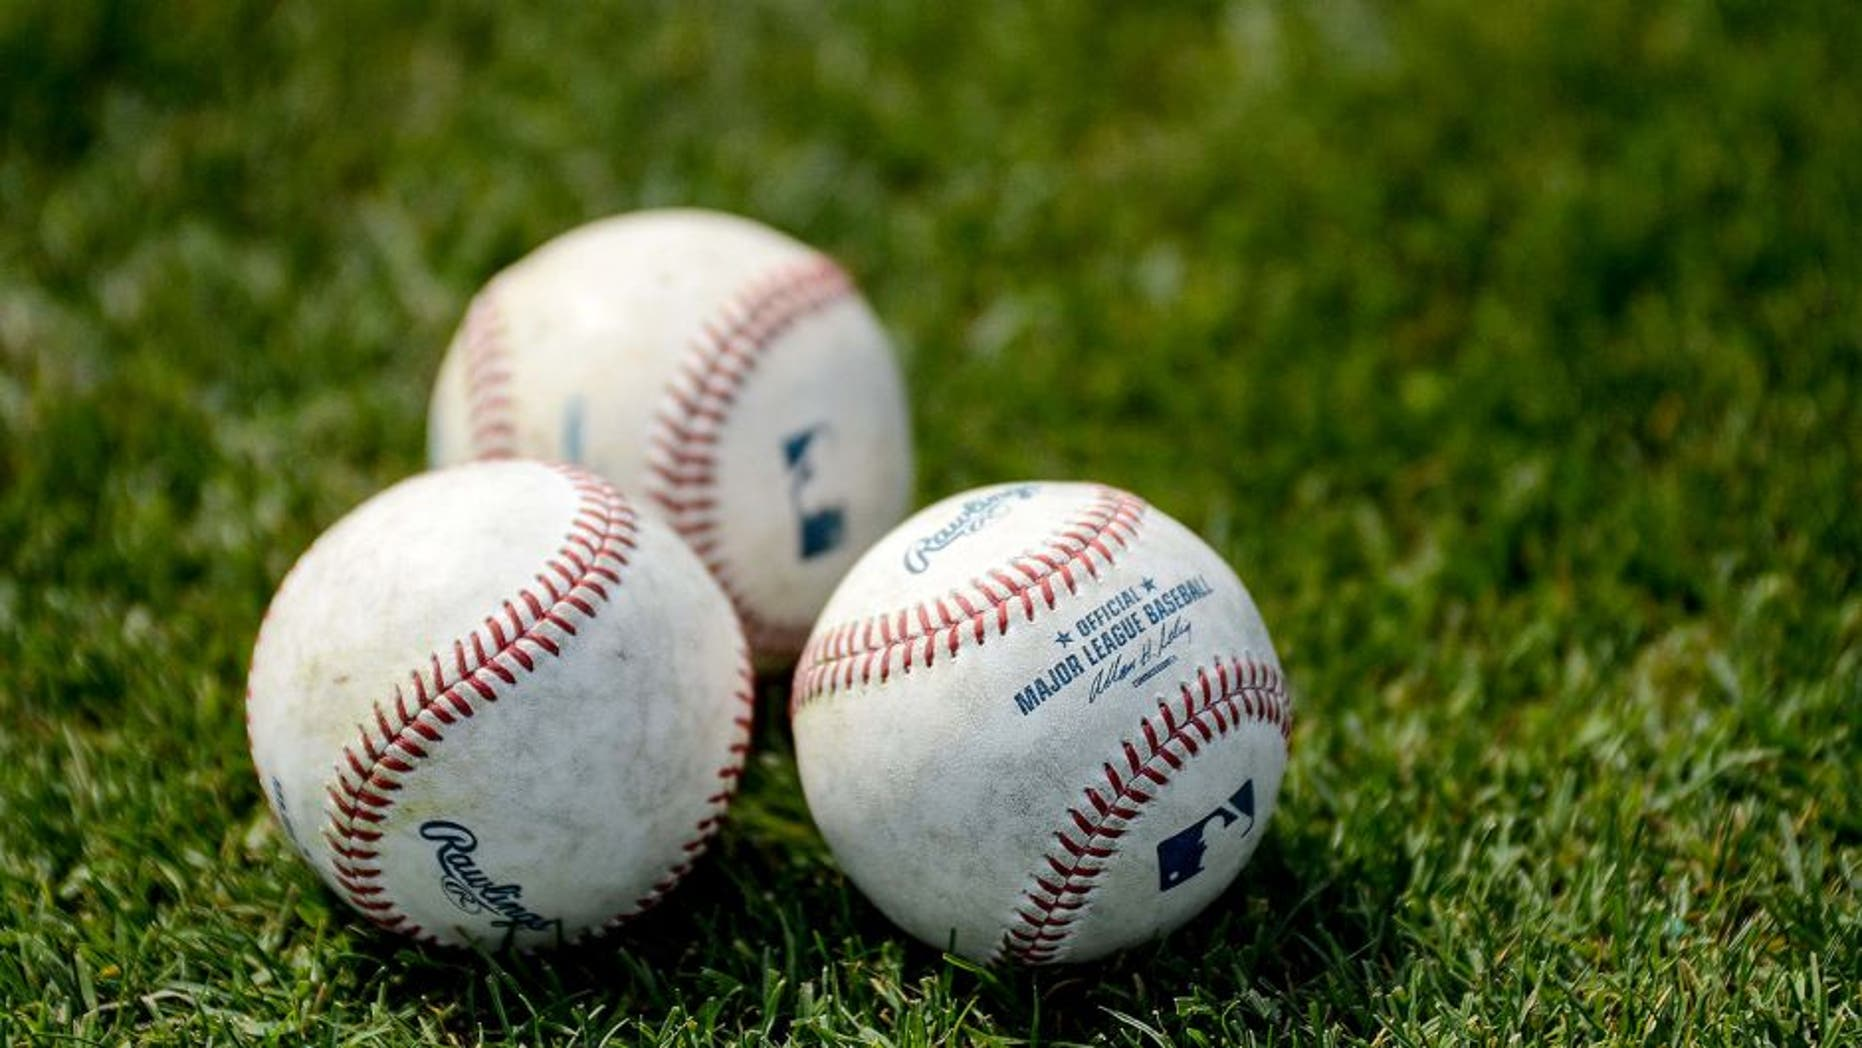 Mar 5, 2014; Dunedin, FL, USA; Baseballs sit on the field before the spring training game between the Pittsburg Pirates and Toronto Blue Jays at Florida Auto Exchange Park. Mandatory Credit: Jonathan Dyer-USA TODAY Sports